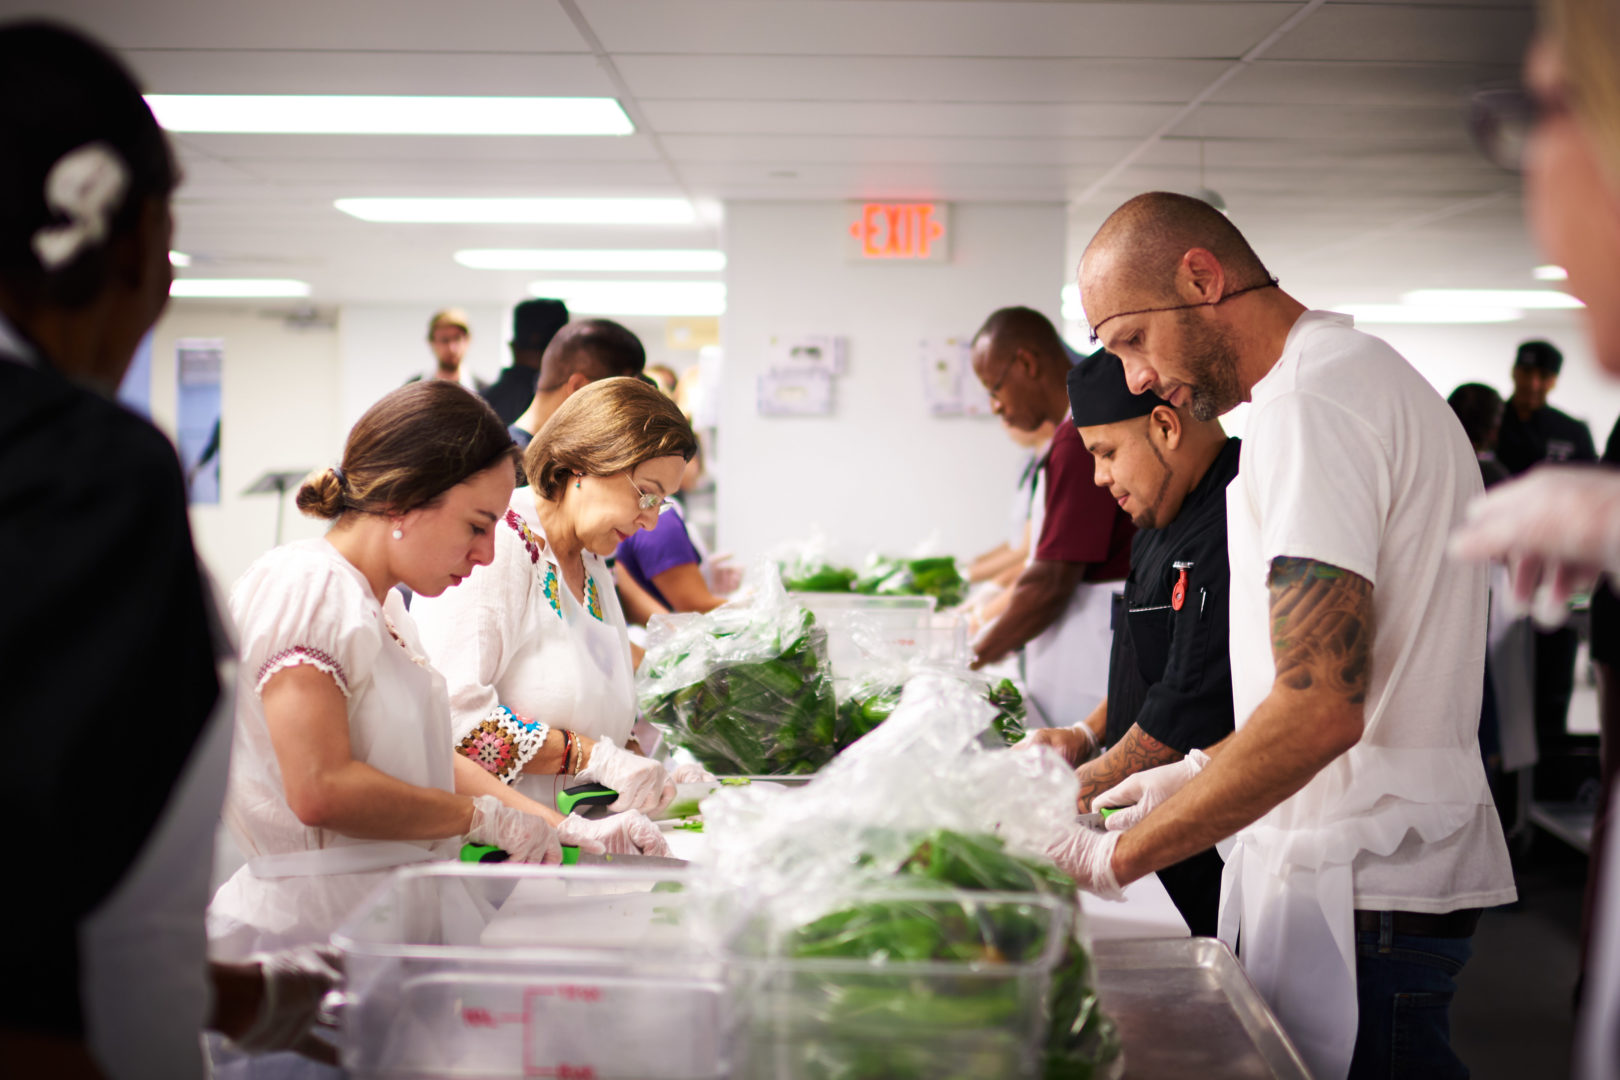 L.A. Kitchen Believes That Neither Food Nor People Should Ever Go To Waste.  By Reclaiming Healthy, Local Food That Would Otherwise Be Discarded, ...